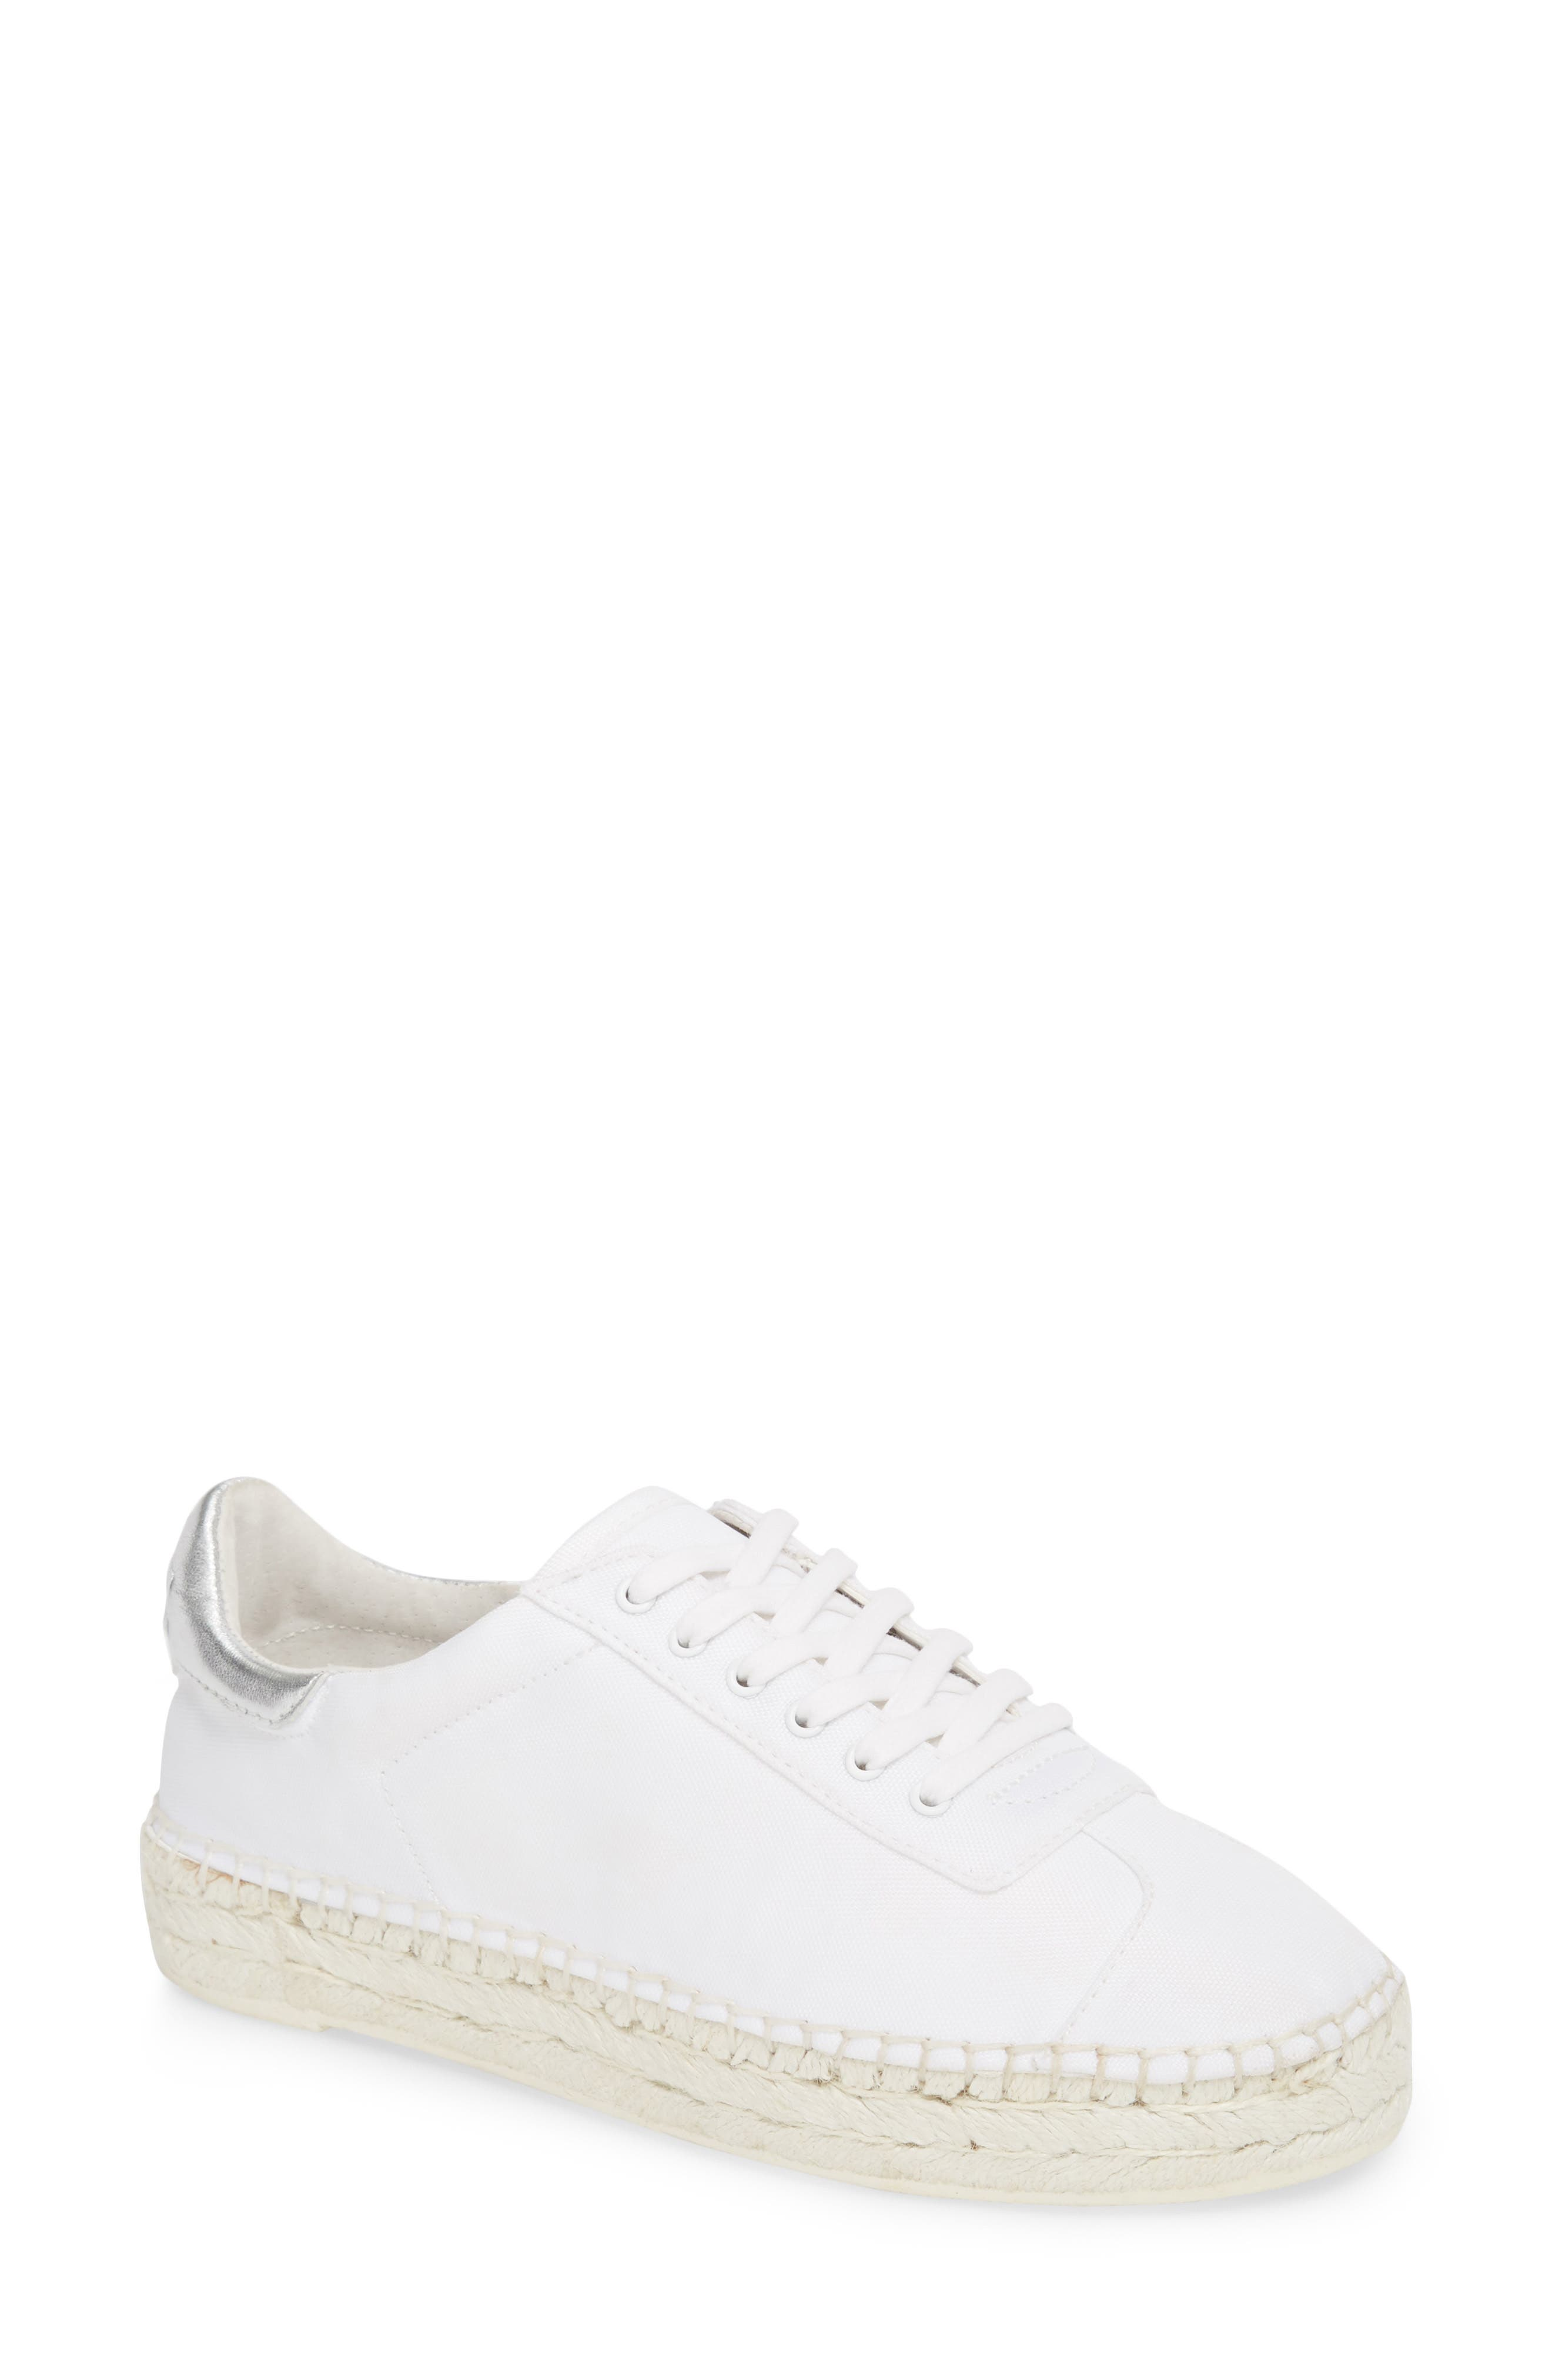 James Espadrille Sneaker,                         Main,                         color, White/ Silver